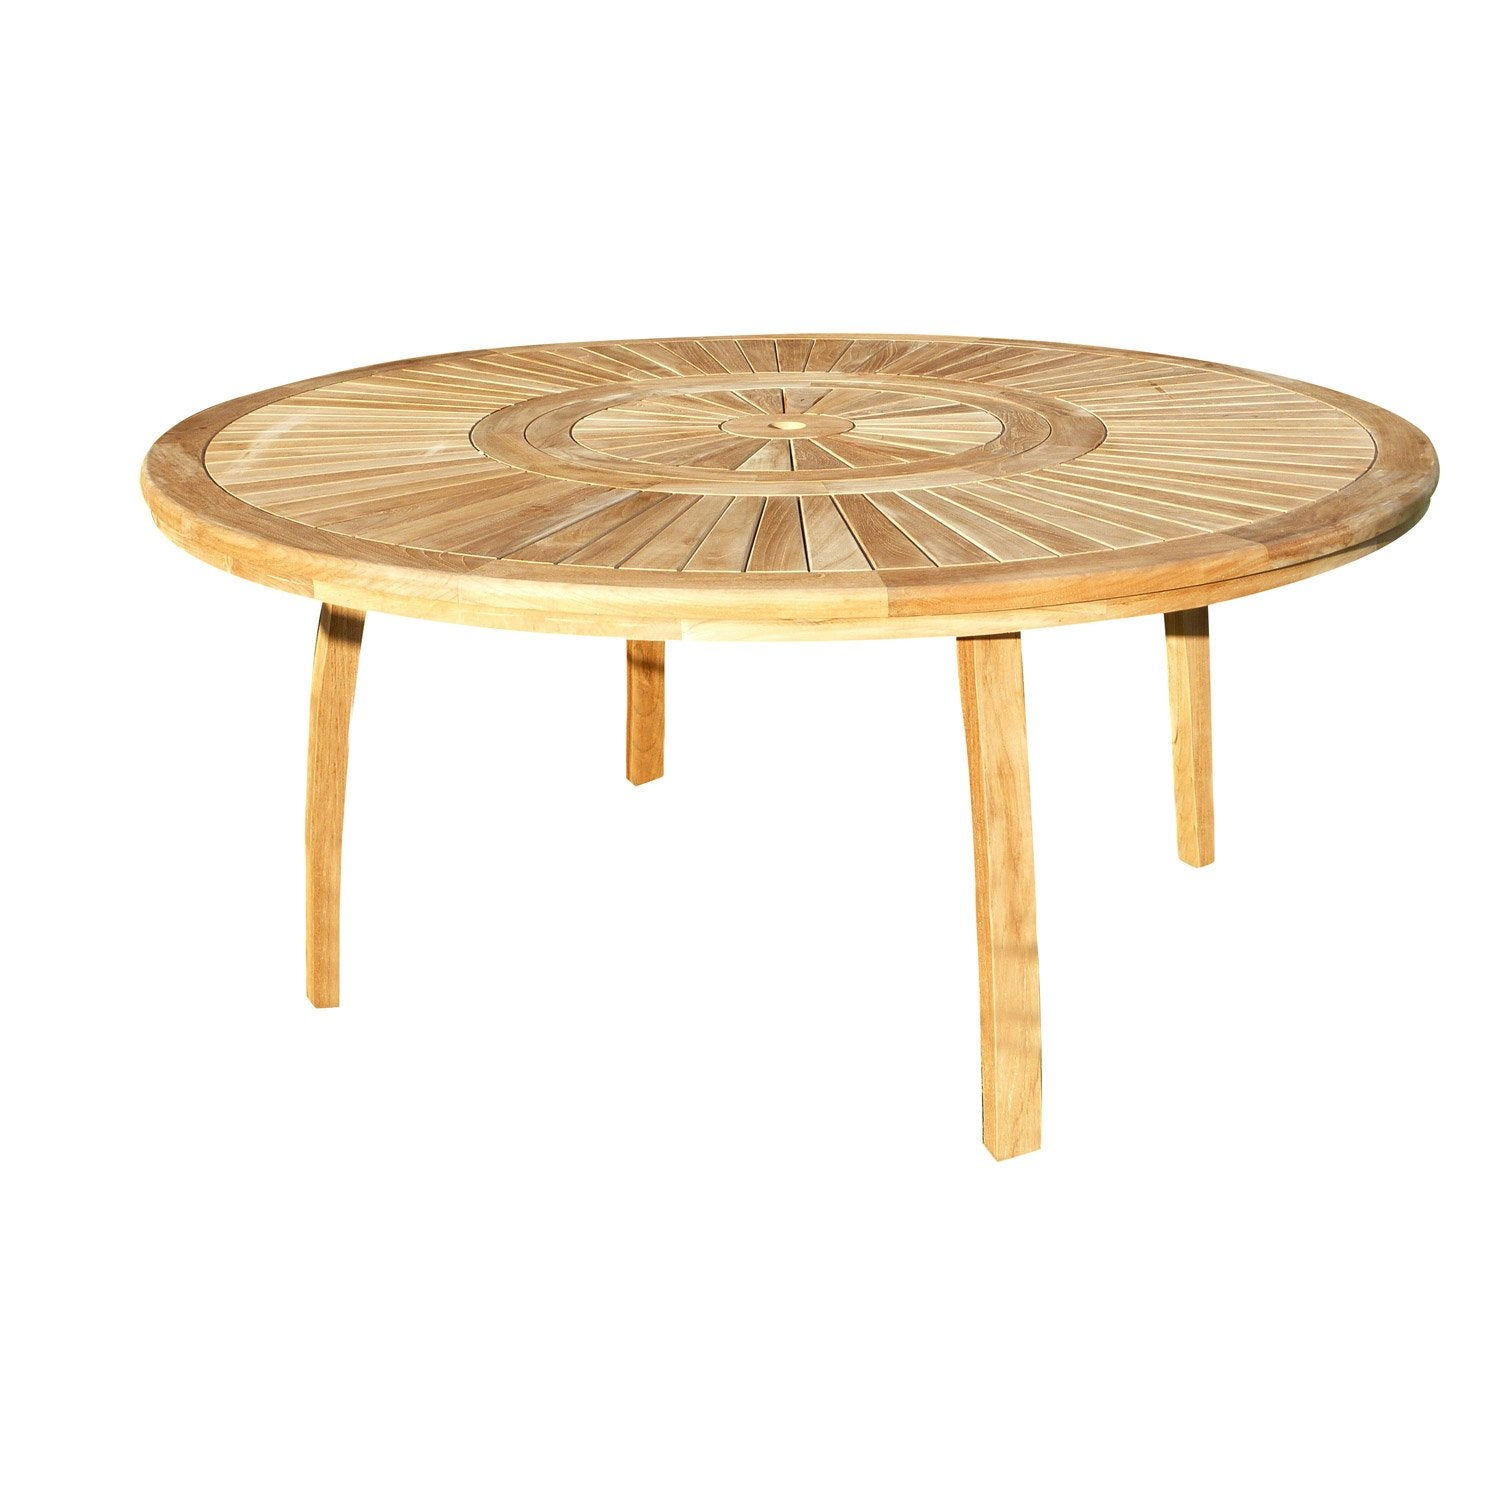 Table de jardin orion ronde naturel 8 personnes leroy merlin for Table exterieur carre 8 personnes